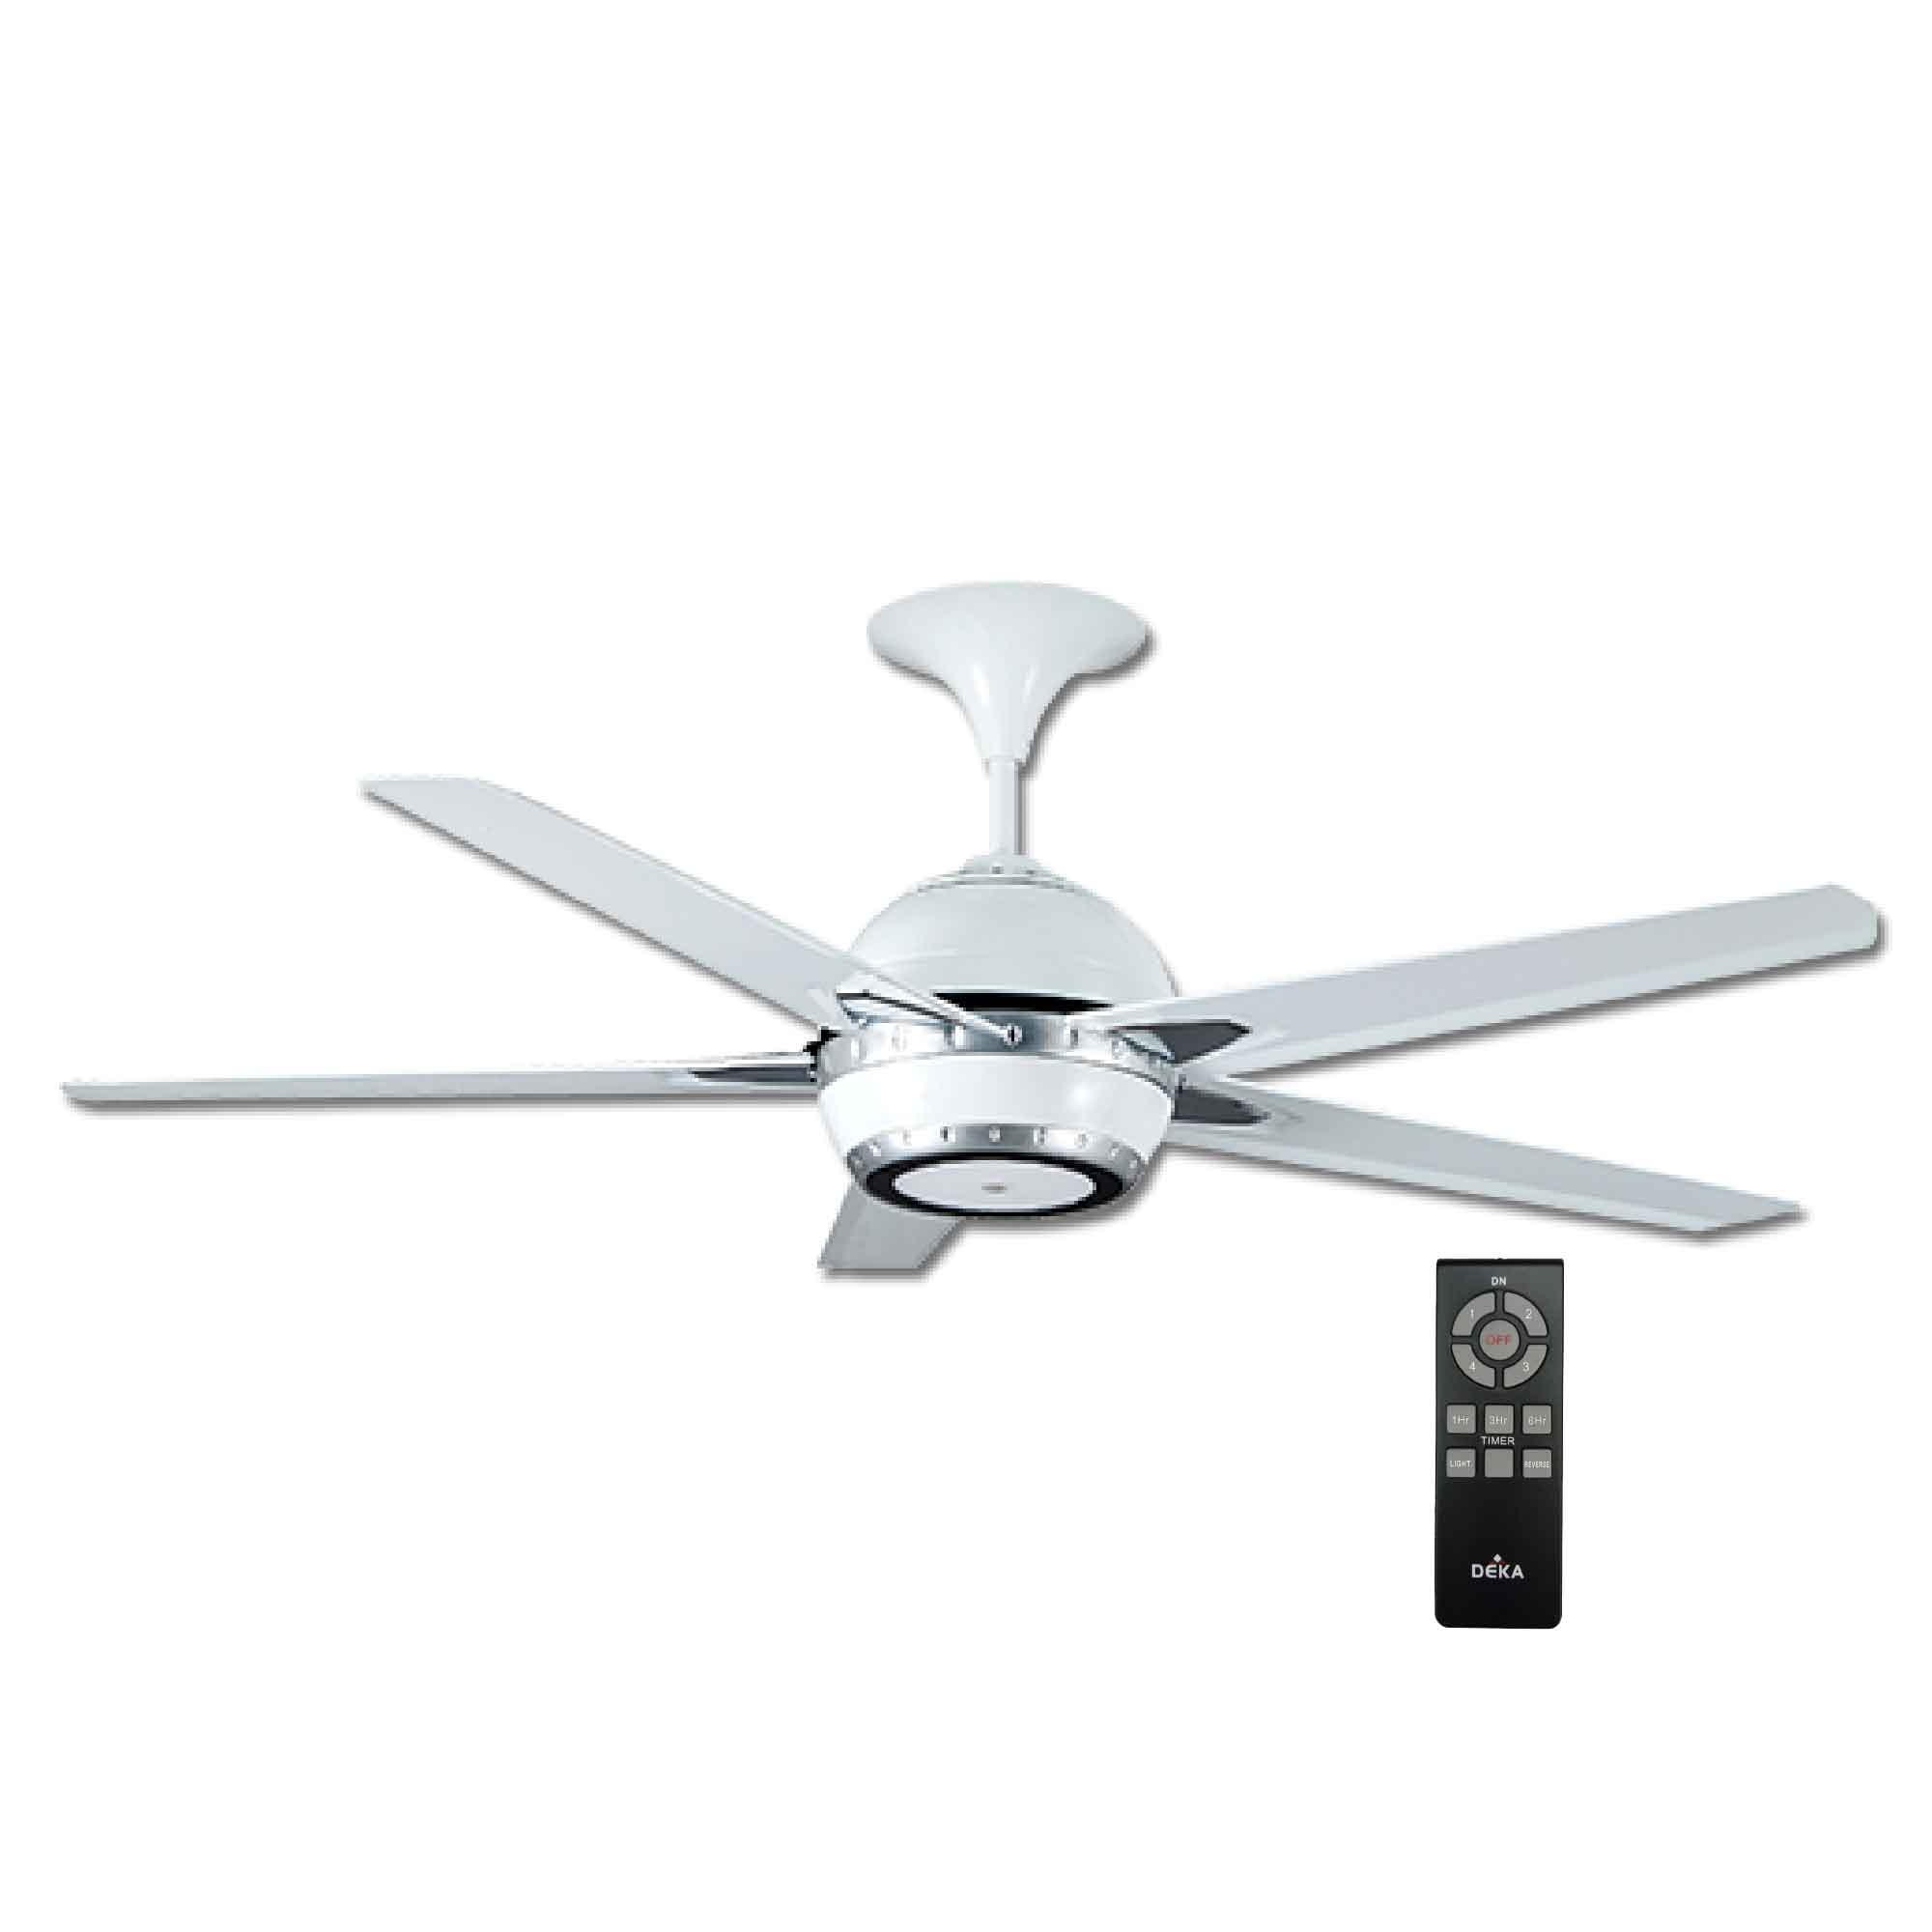 "deka ceiling fan with light q10 (60"") (end 5/3/2020 3:45 pm) Bright Ceiling Fan"